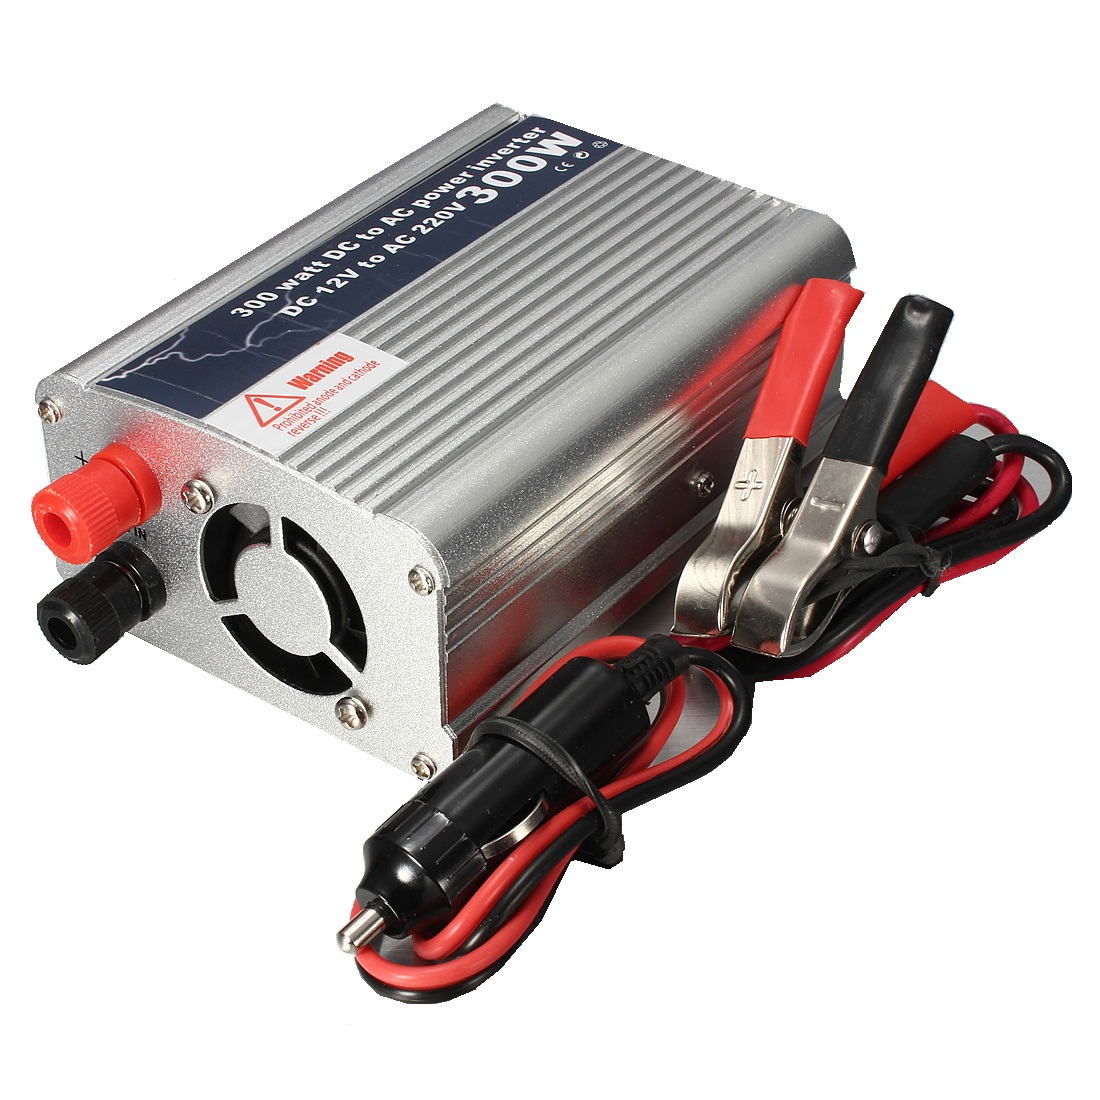 300W USB DC 12V to AC 220V Power Inverter Converter Cha